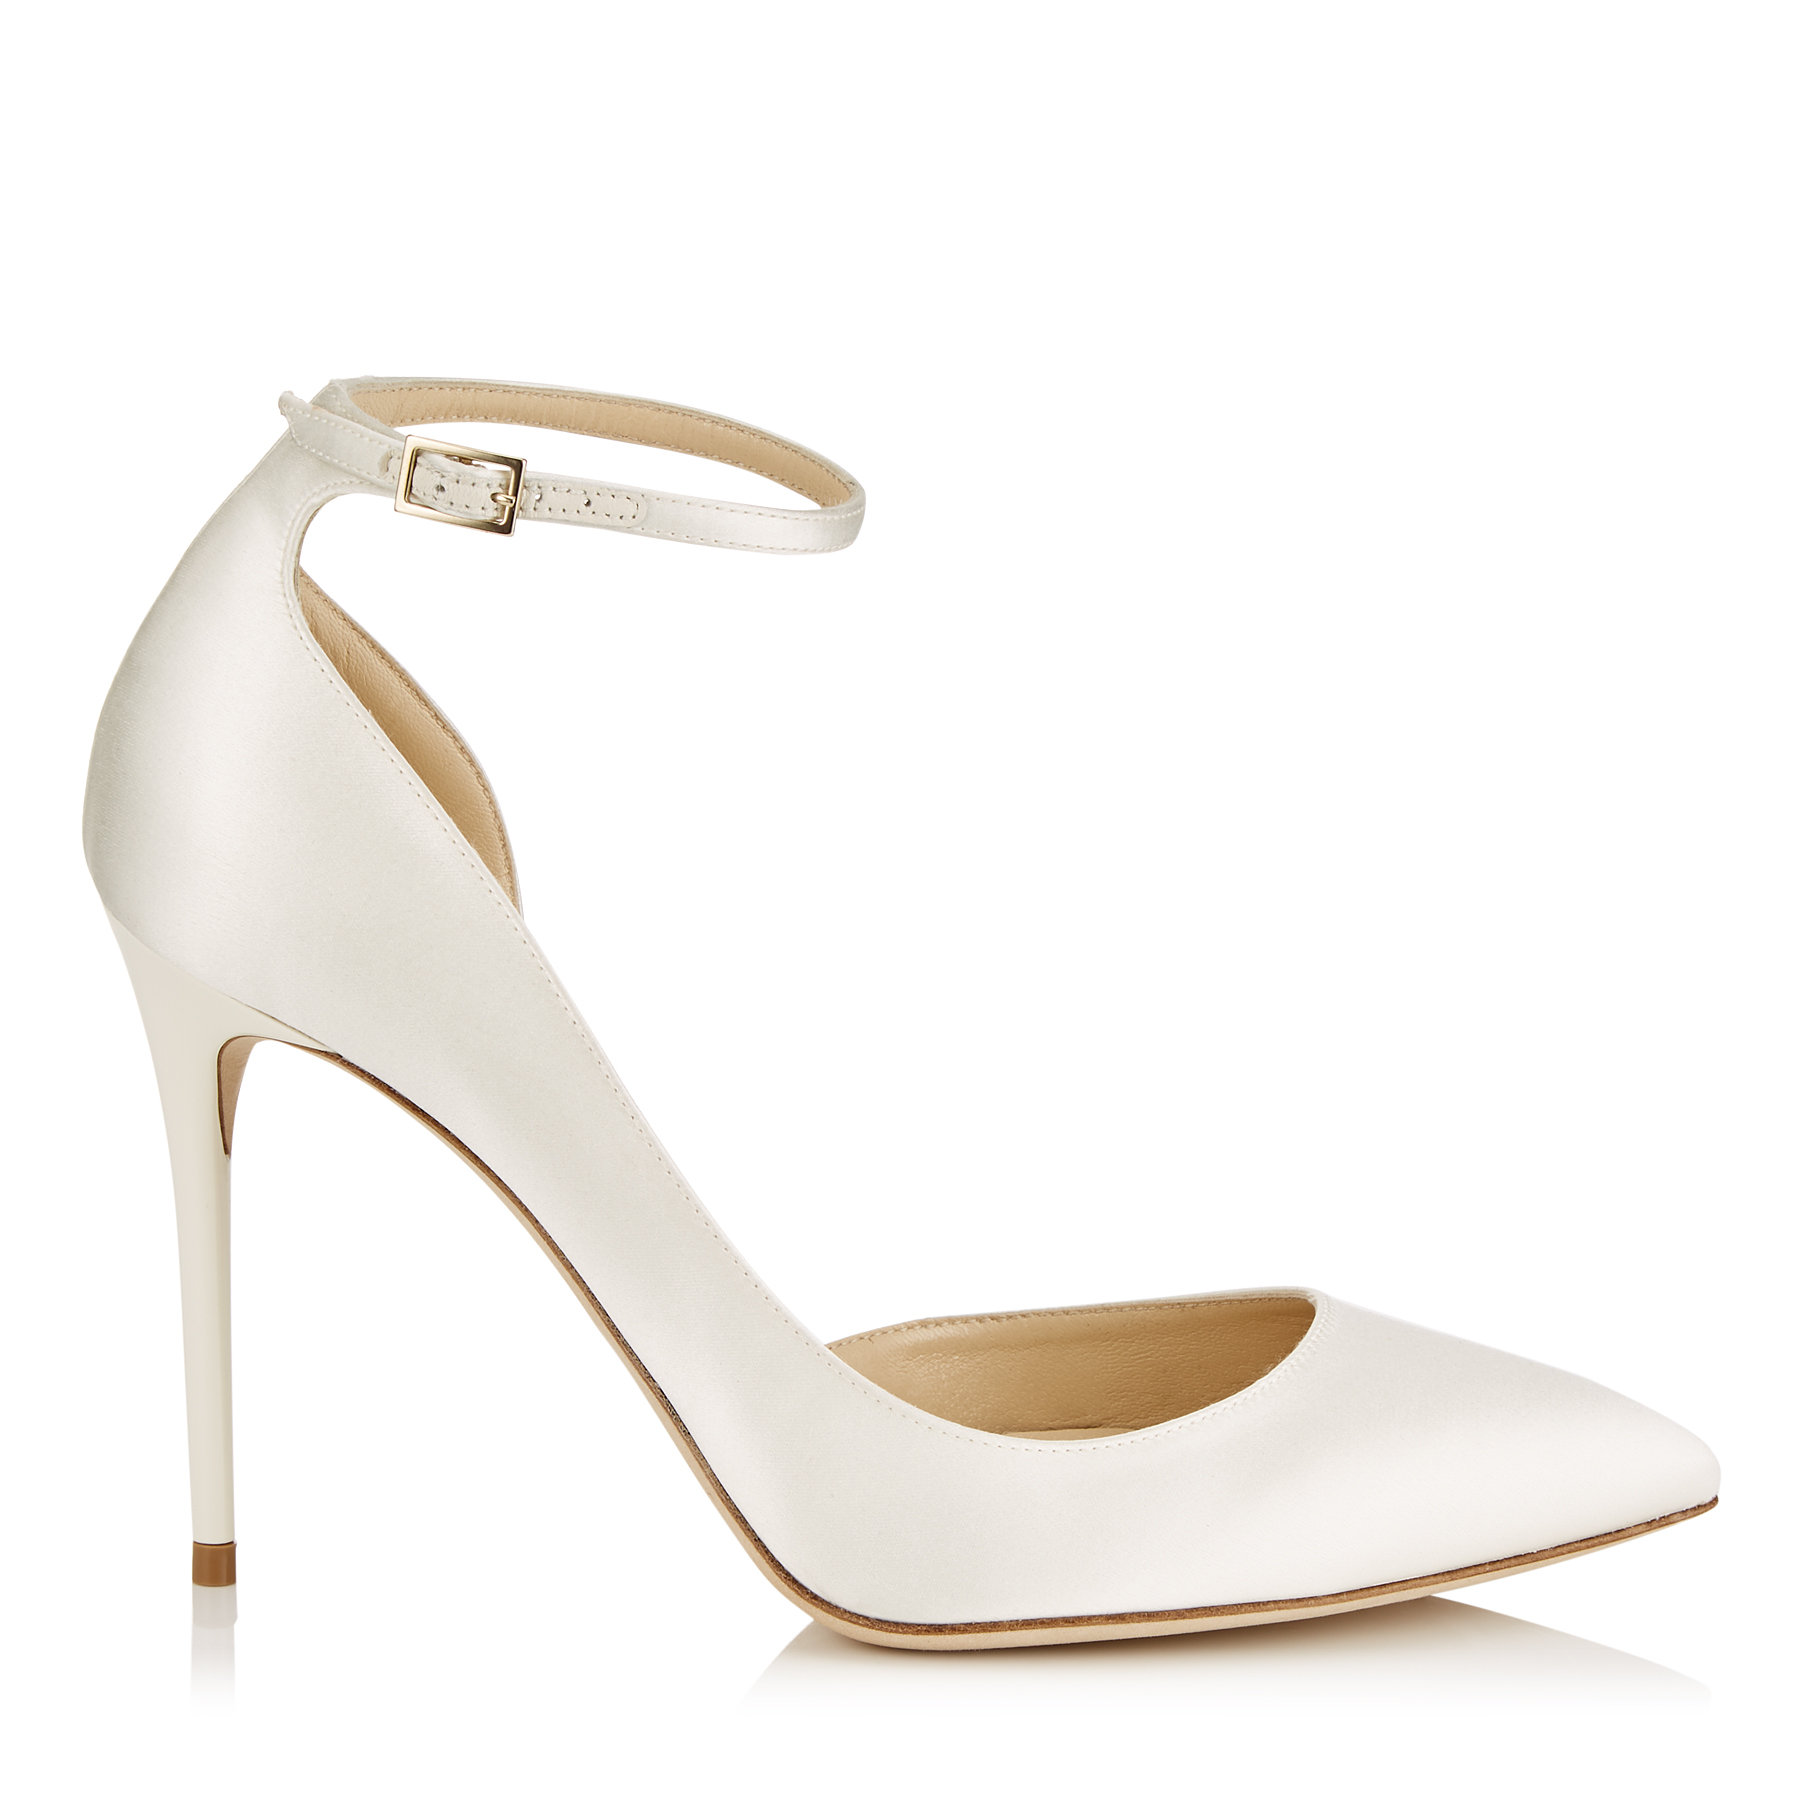 LUCY 100 Ivory Satin Pointy Toe Pumps by Jimmy Choo